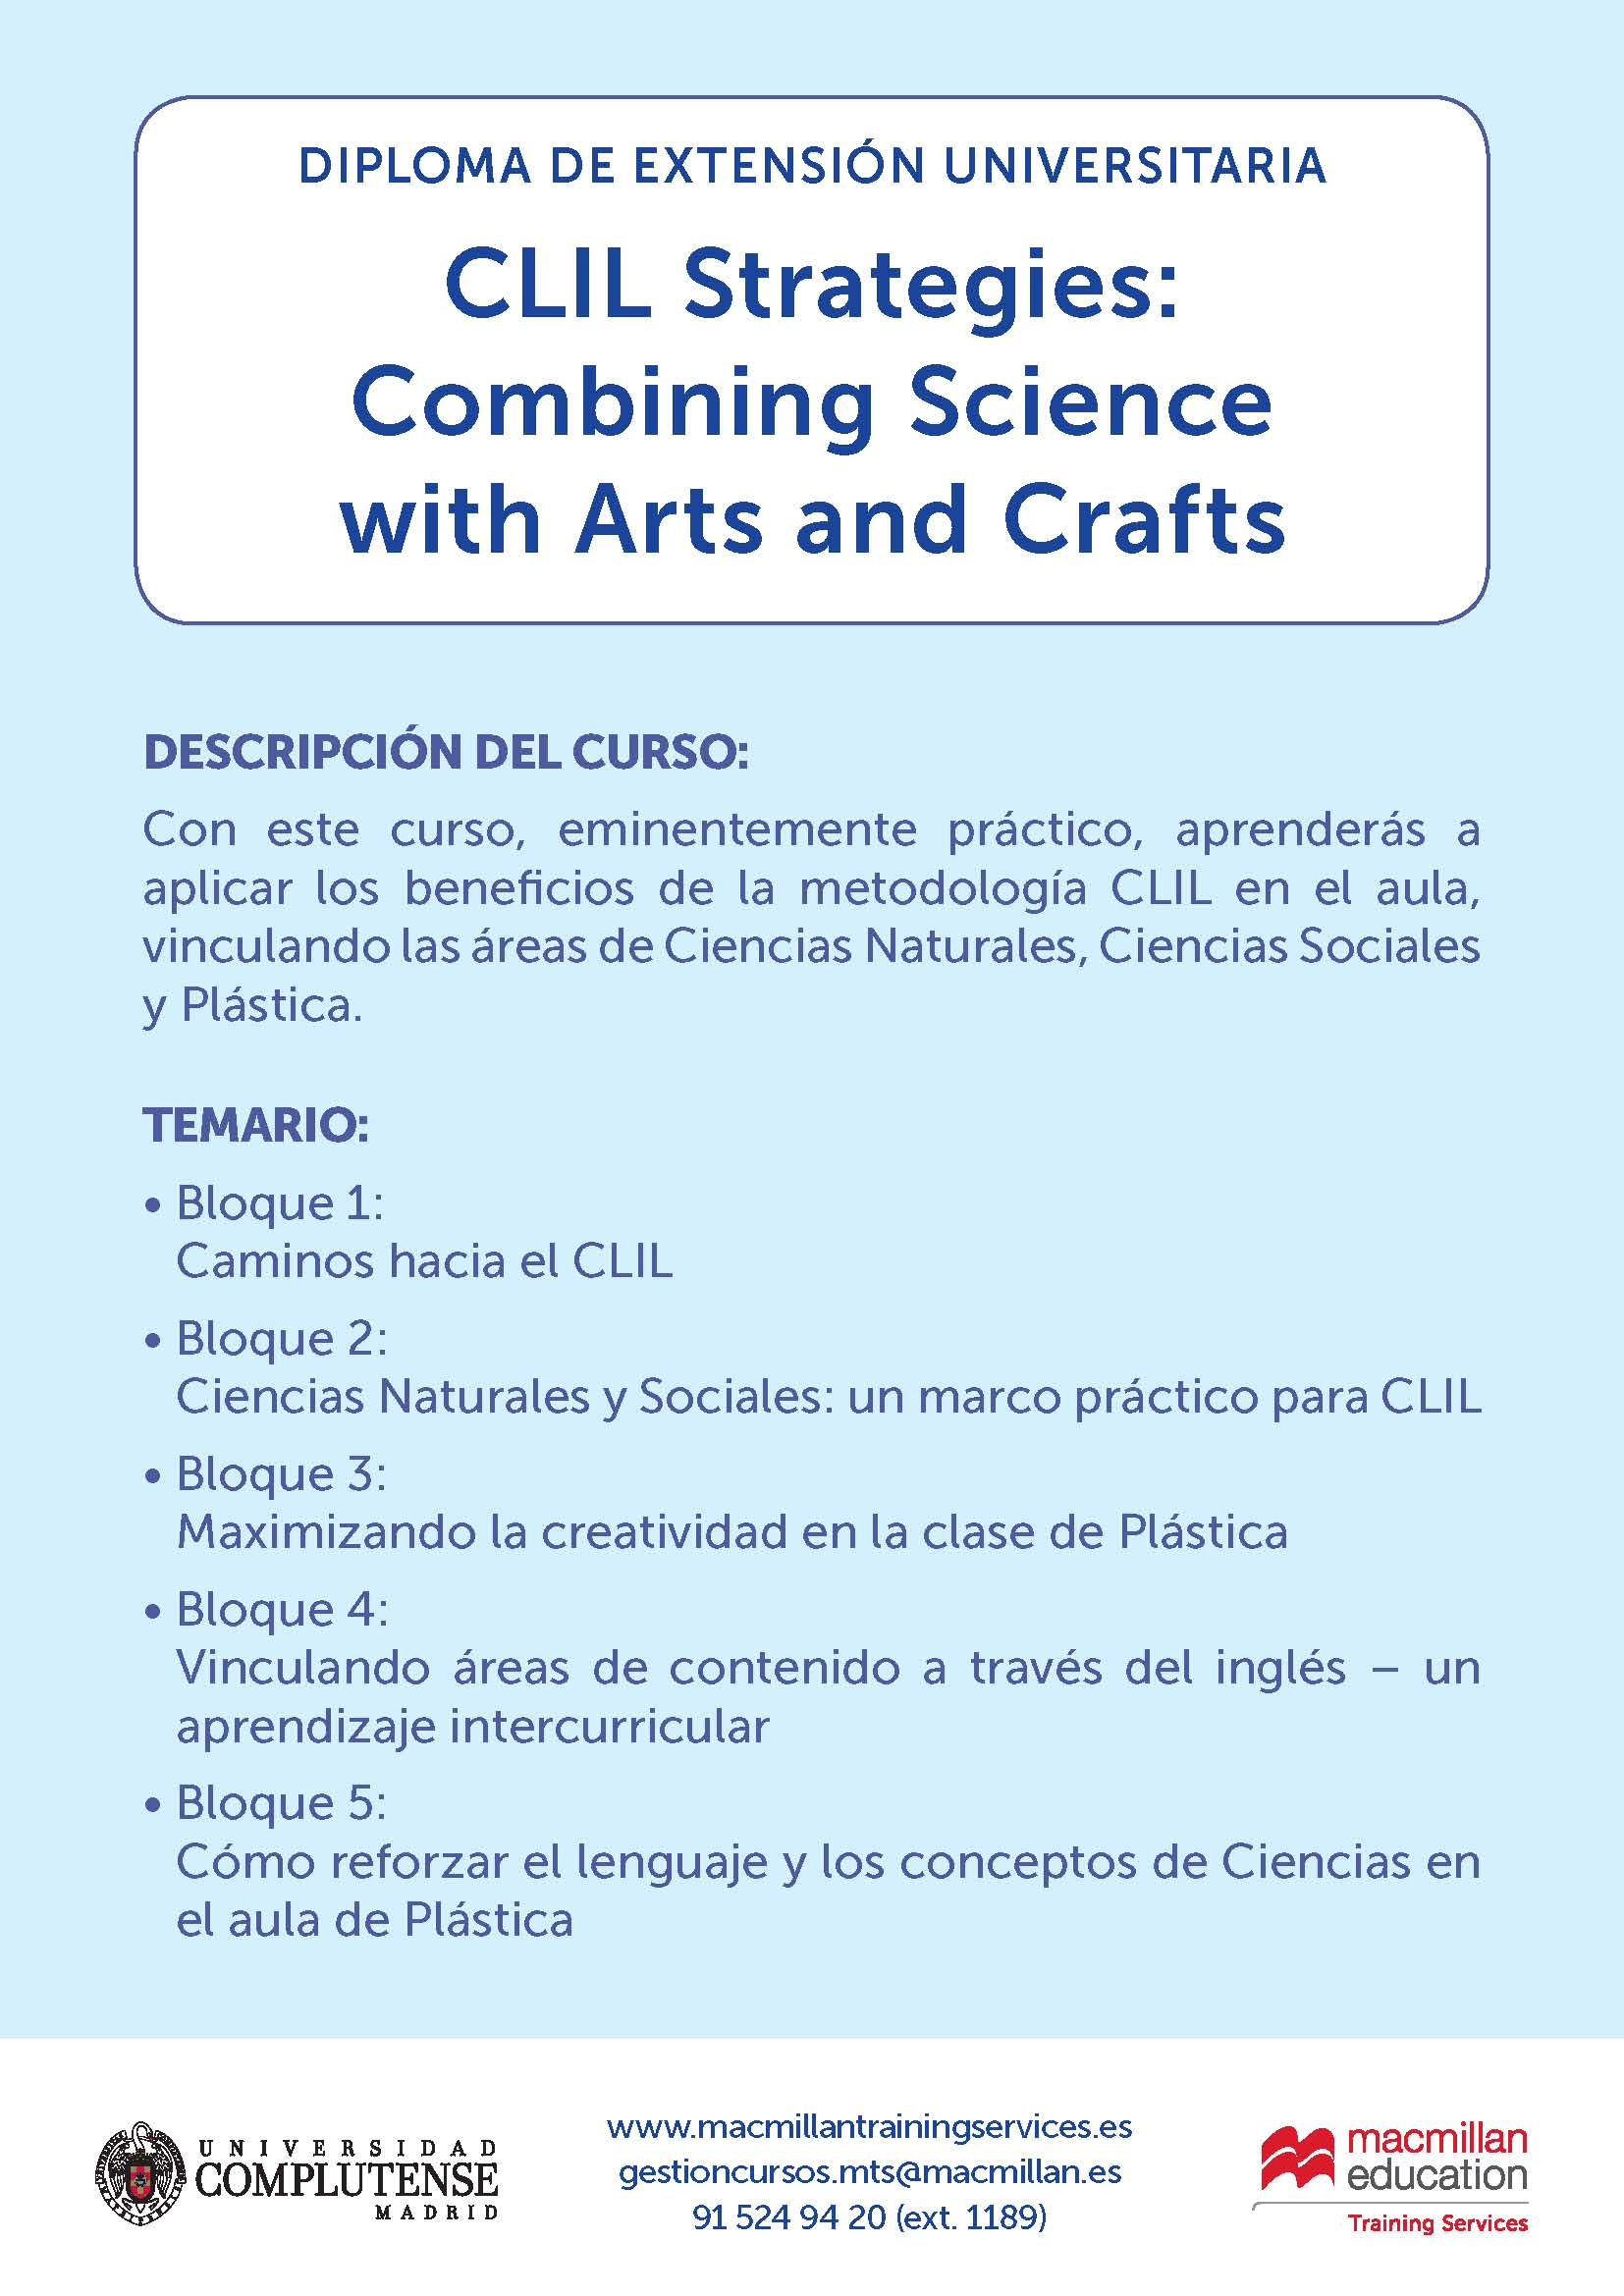 Diploma de Extensión Universitaria.  CLIL Strategies: Combining Science with Arts and Crafts